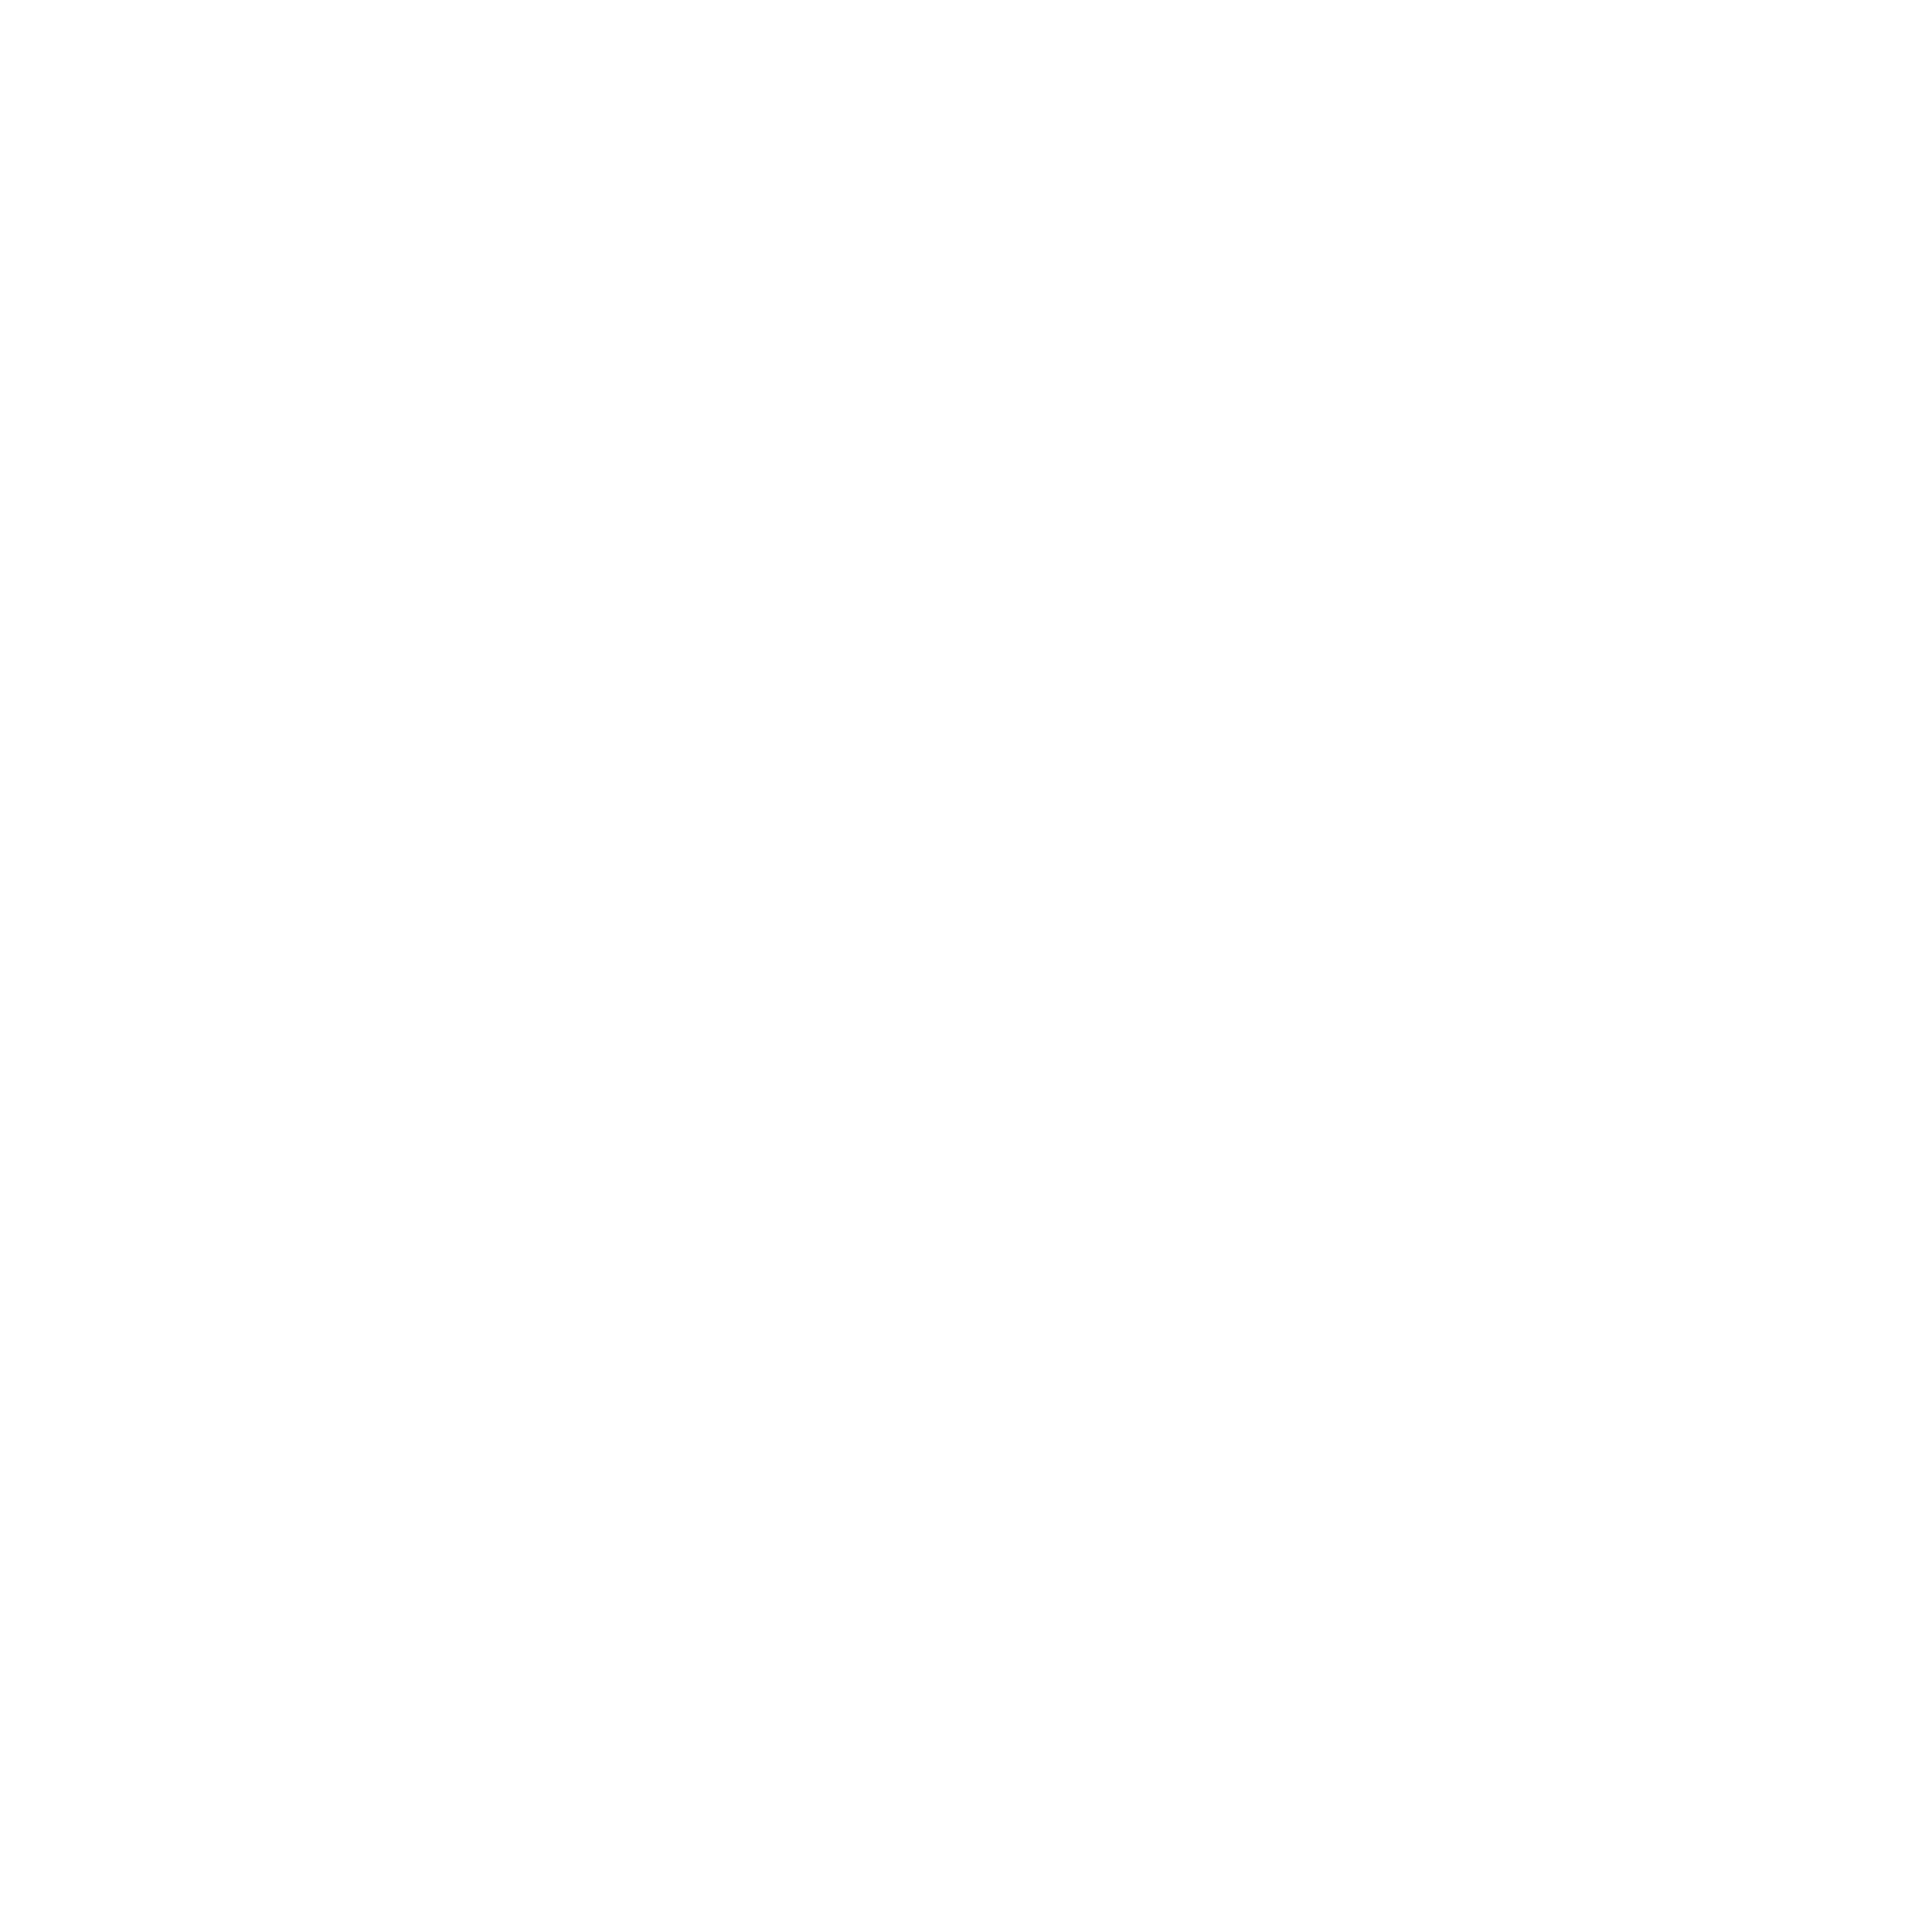 FASHION logo white.png